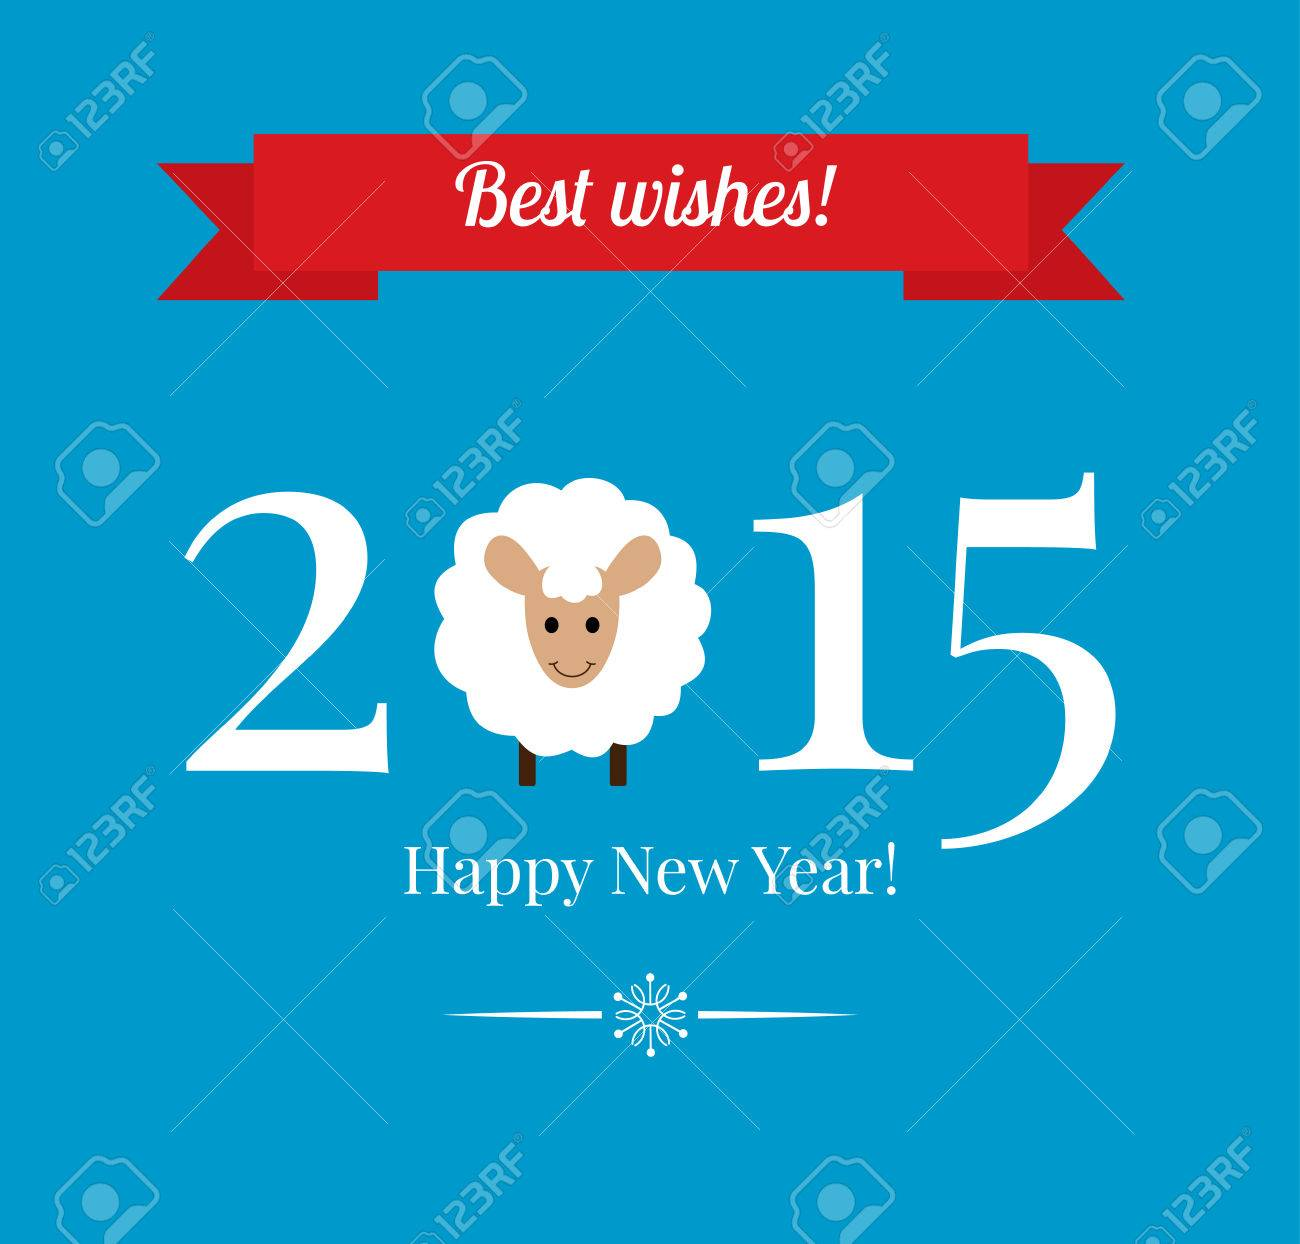 Chinese zodiac 2015 year of sheep or goat flat design style happy new year greetings card or background vector illustration chinese zodiac 2015 year of sheep or goat flat design style kristyandbryce Choice Image